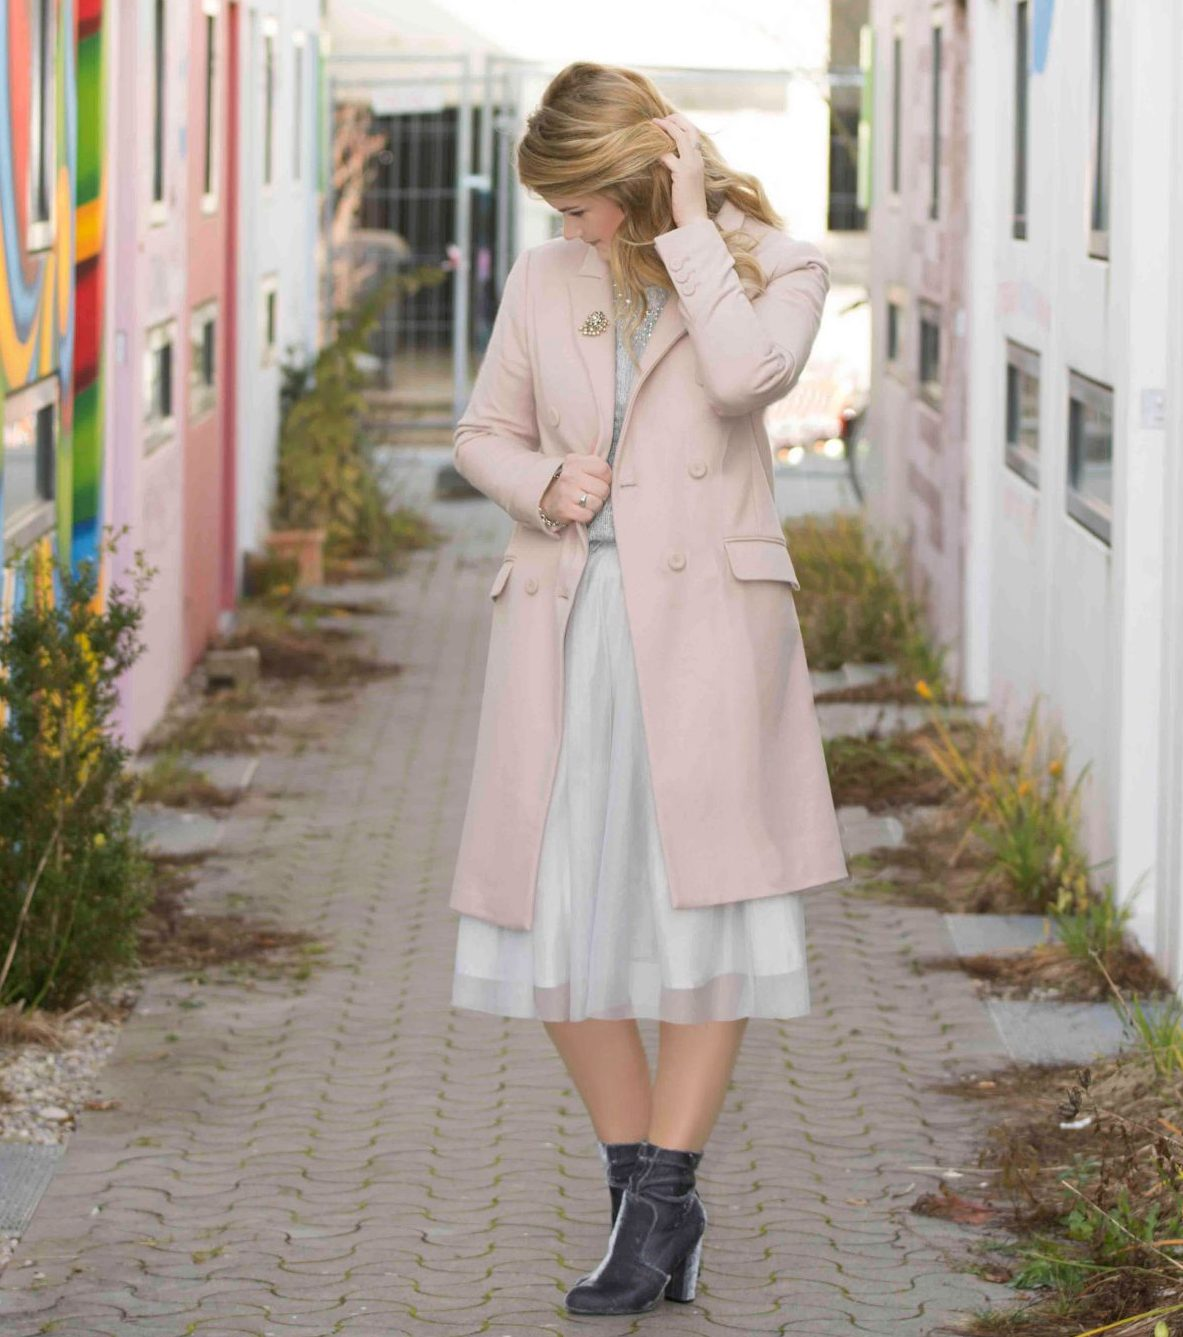 Zara, Pastell, Pastellrosa, Rosa, L'Oréal, Inoa, Perlen, Perlenbrosche, Tiffany, Return to Tiffany, Pineapples and Pumps, Fashionblog, Modeblog, Modeblogger, Fashionblogger, Blogger, Styleblogger, Beauyblogger, Muenchen, Blond, ghd, Mantel, Coat, Statement, Winter, Look, Lookbook, Schmuck, Accesoires, Brosche, Tuellrock, Tuell, Rock, Pullover, C&A, Samt, Samtboots, Boots, Stiefelette